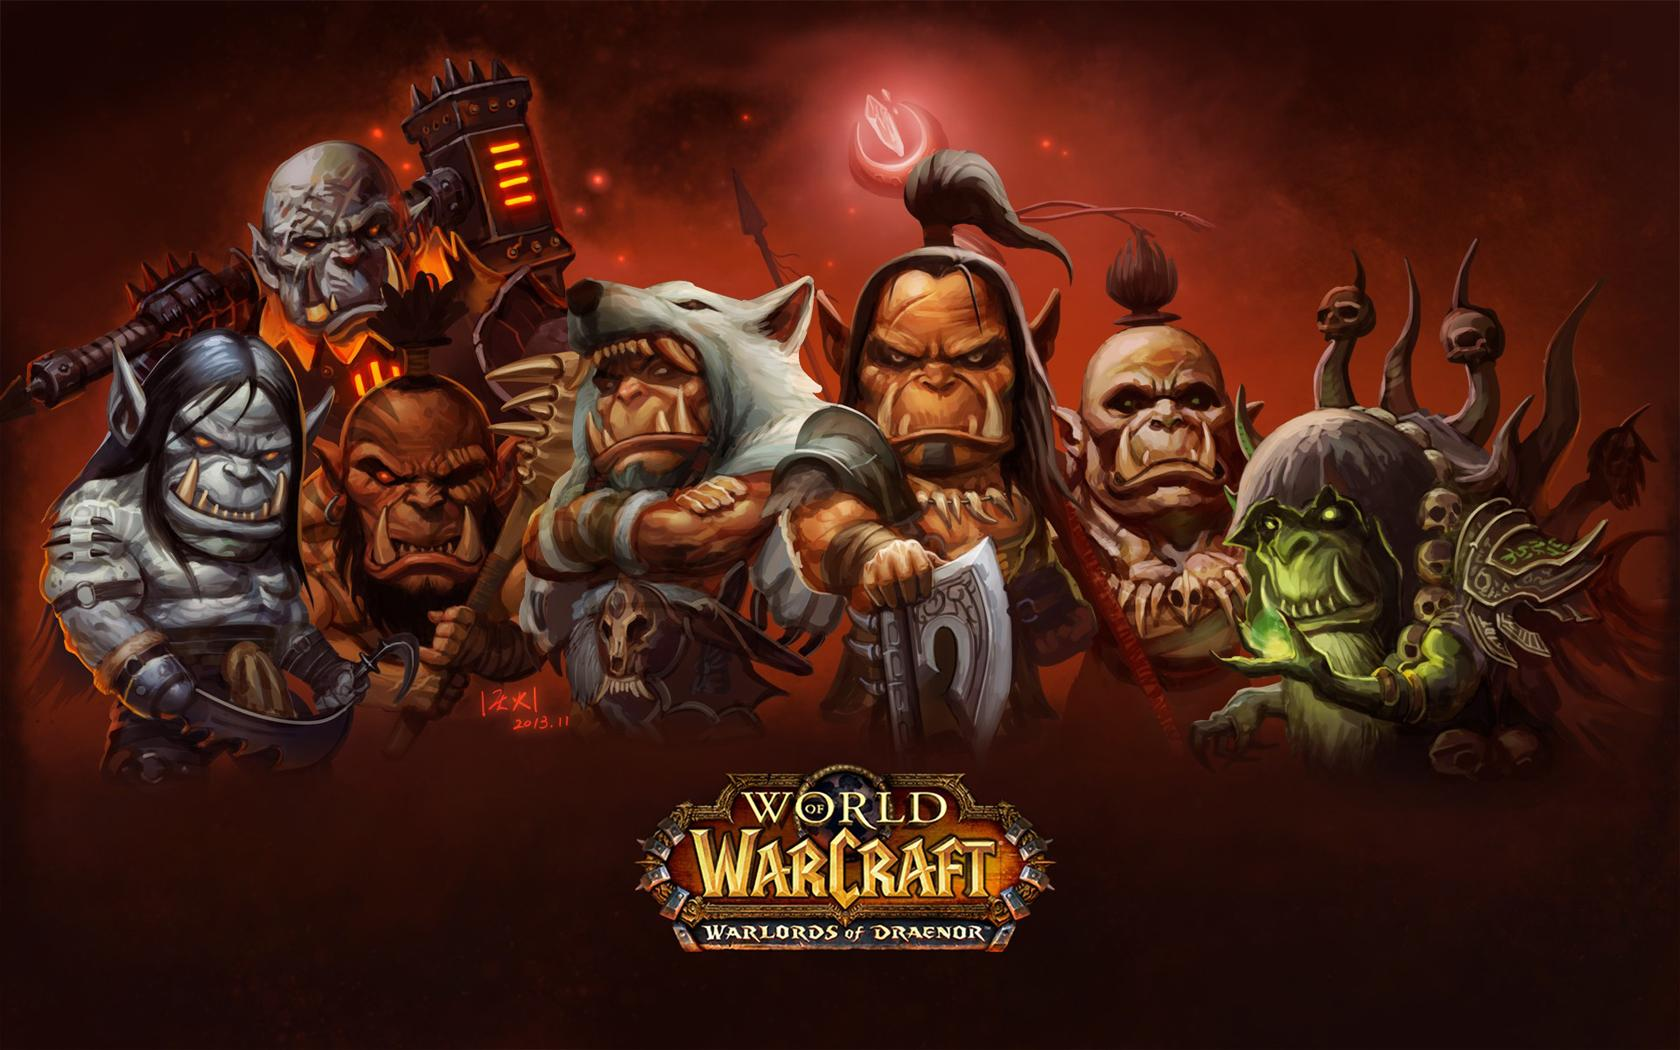 Picture with tags: HD, Games, World of Warcraft, Gaming, Reviews, It's worth playing